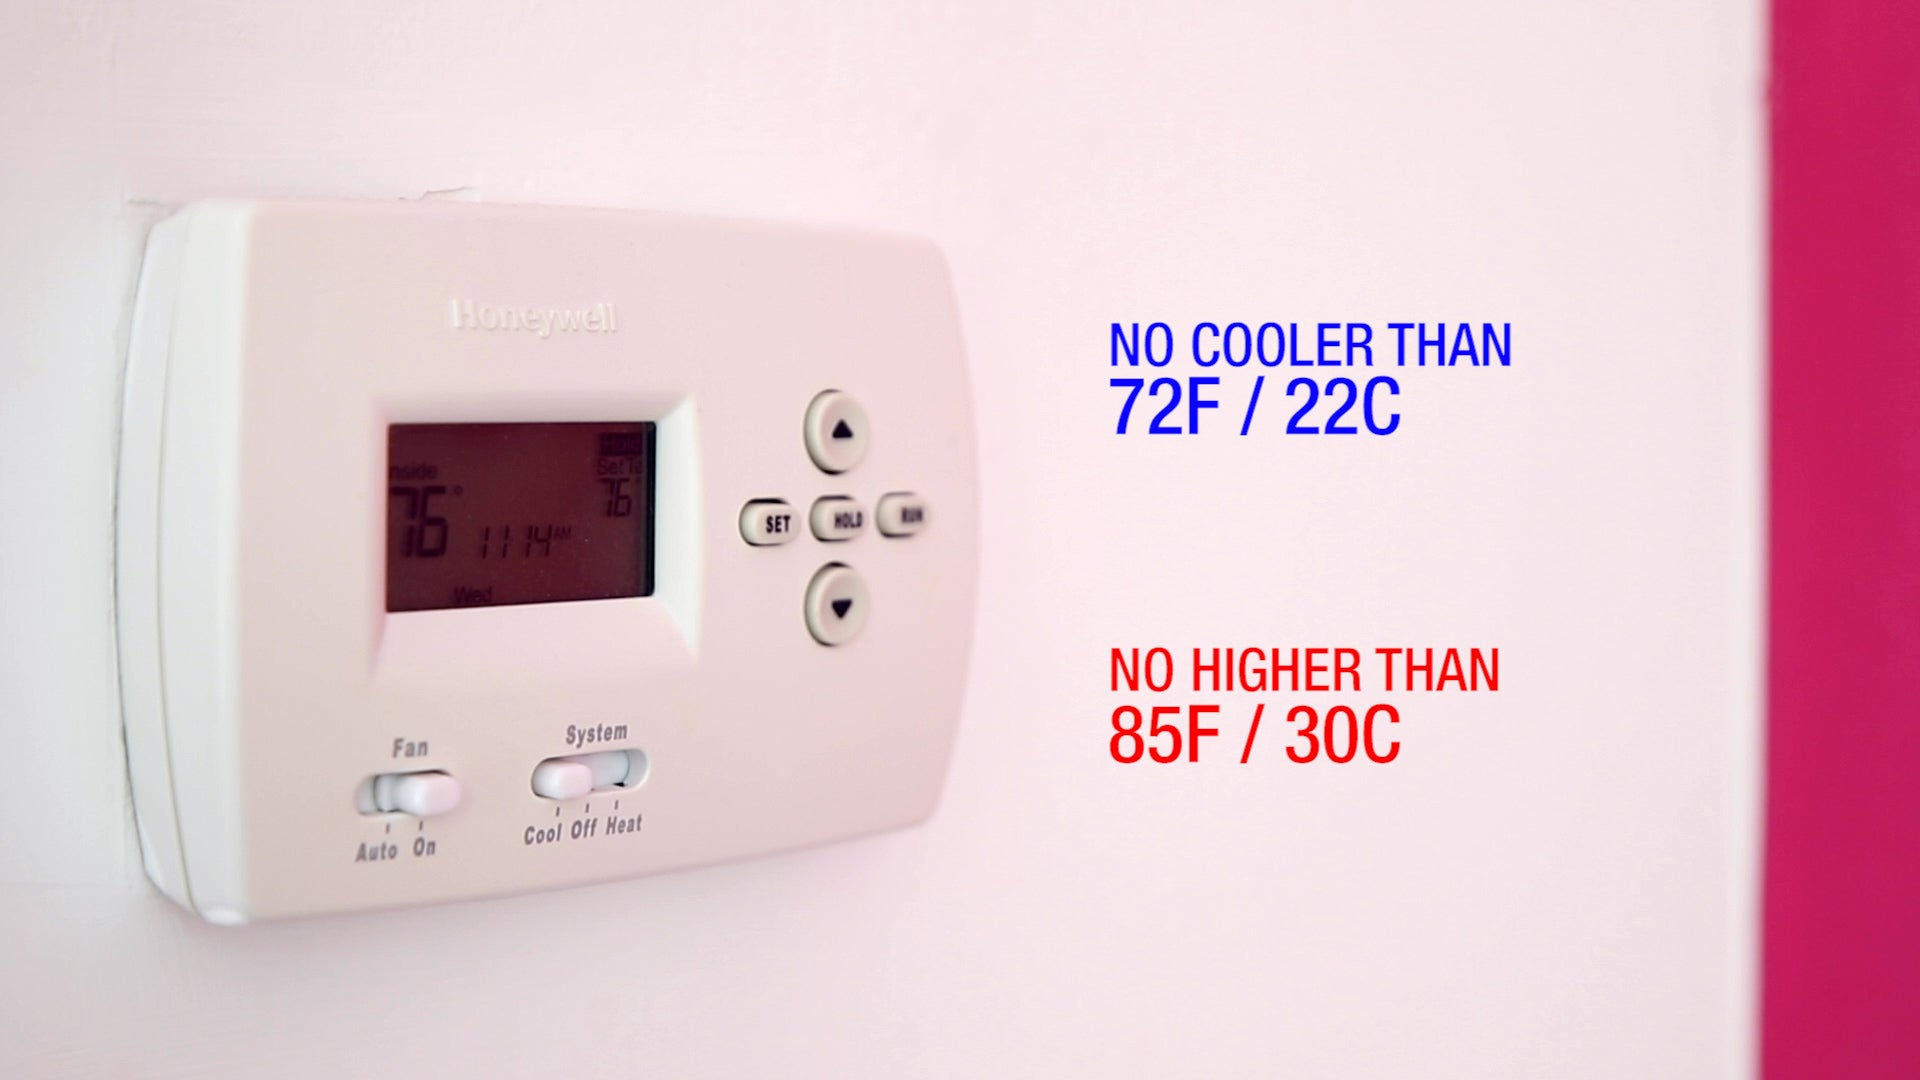 ideal temperature to resin 75-85F or 24-30C